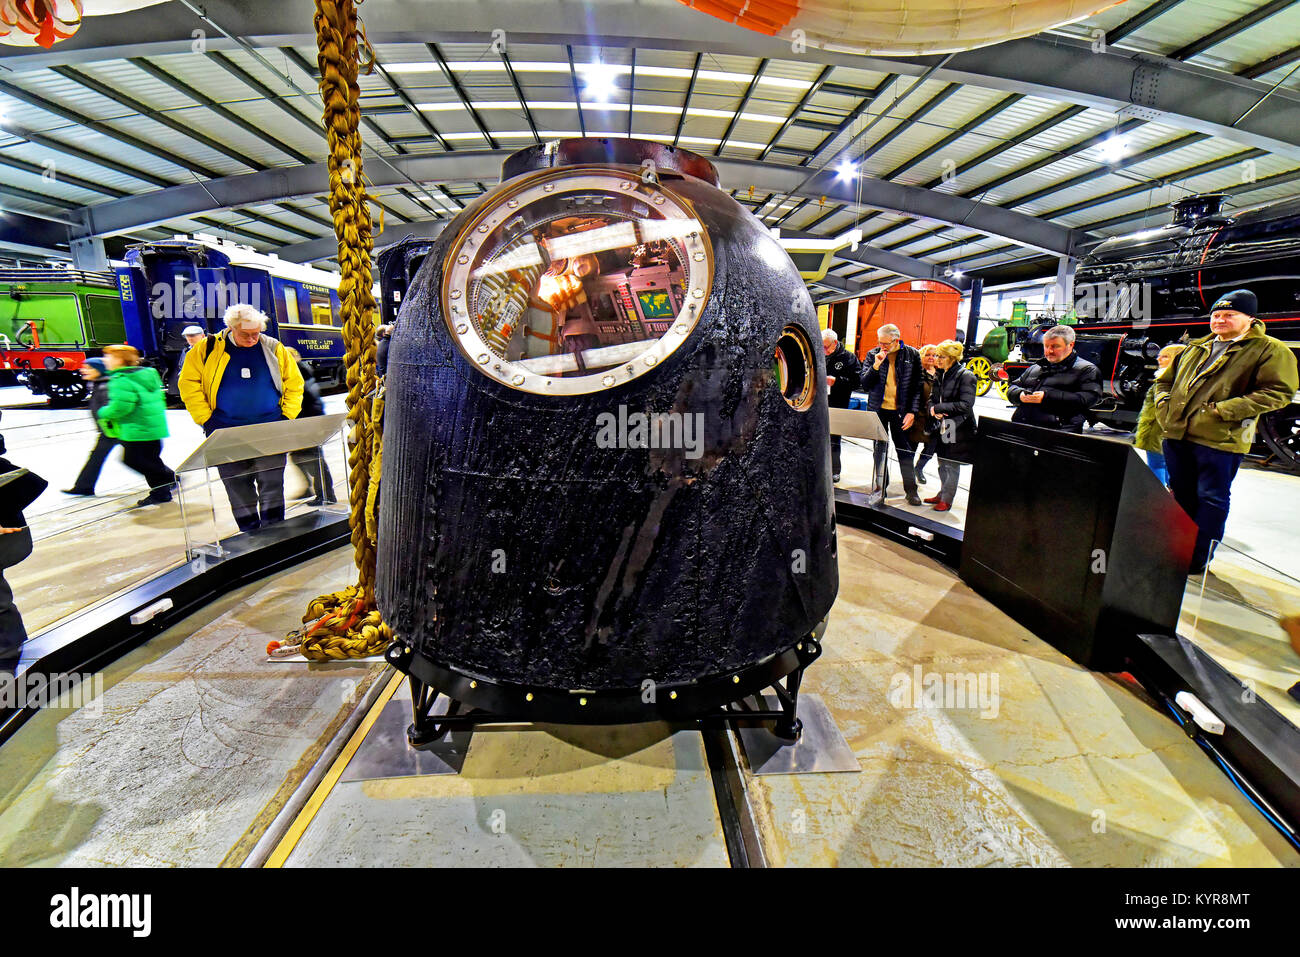 Tim Peakes Soyuz Russian Space Craft capsule Shildon Railway Museum - Stock Image